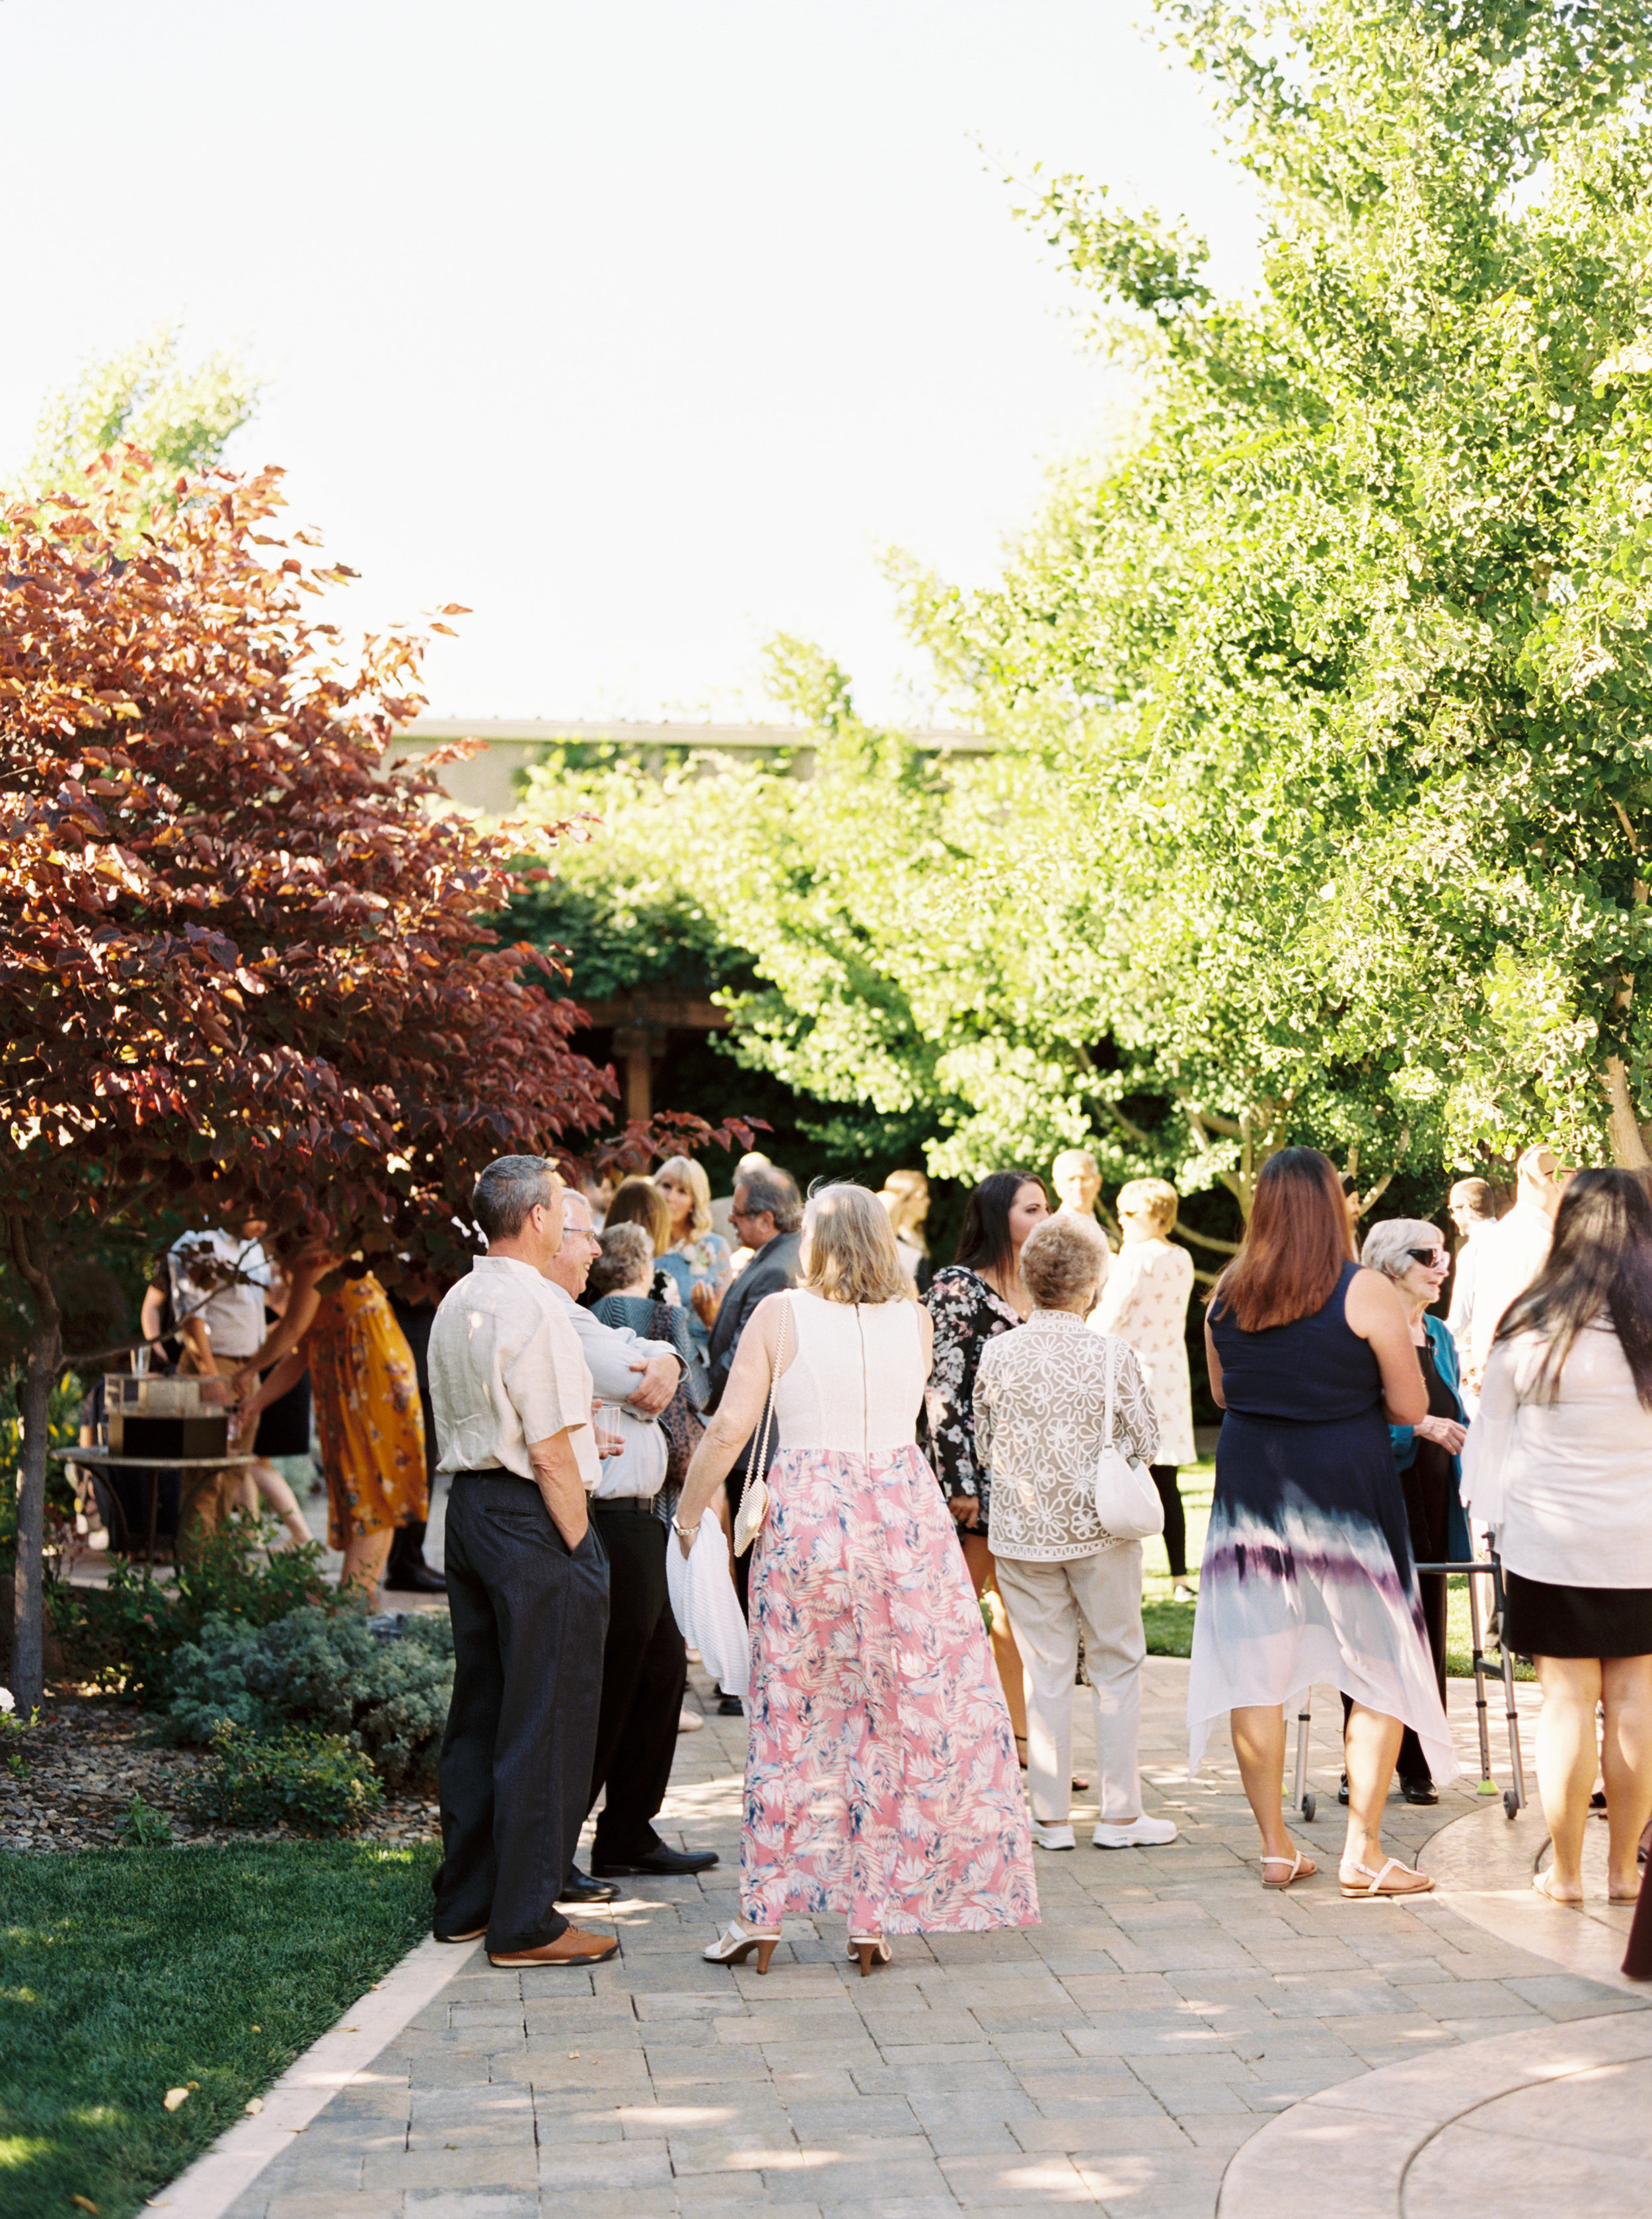 Crooked-vine-winery-wedding-in-livermore-california-51.jpg